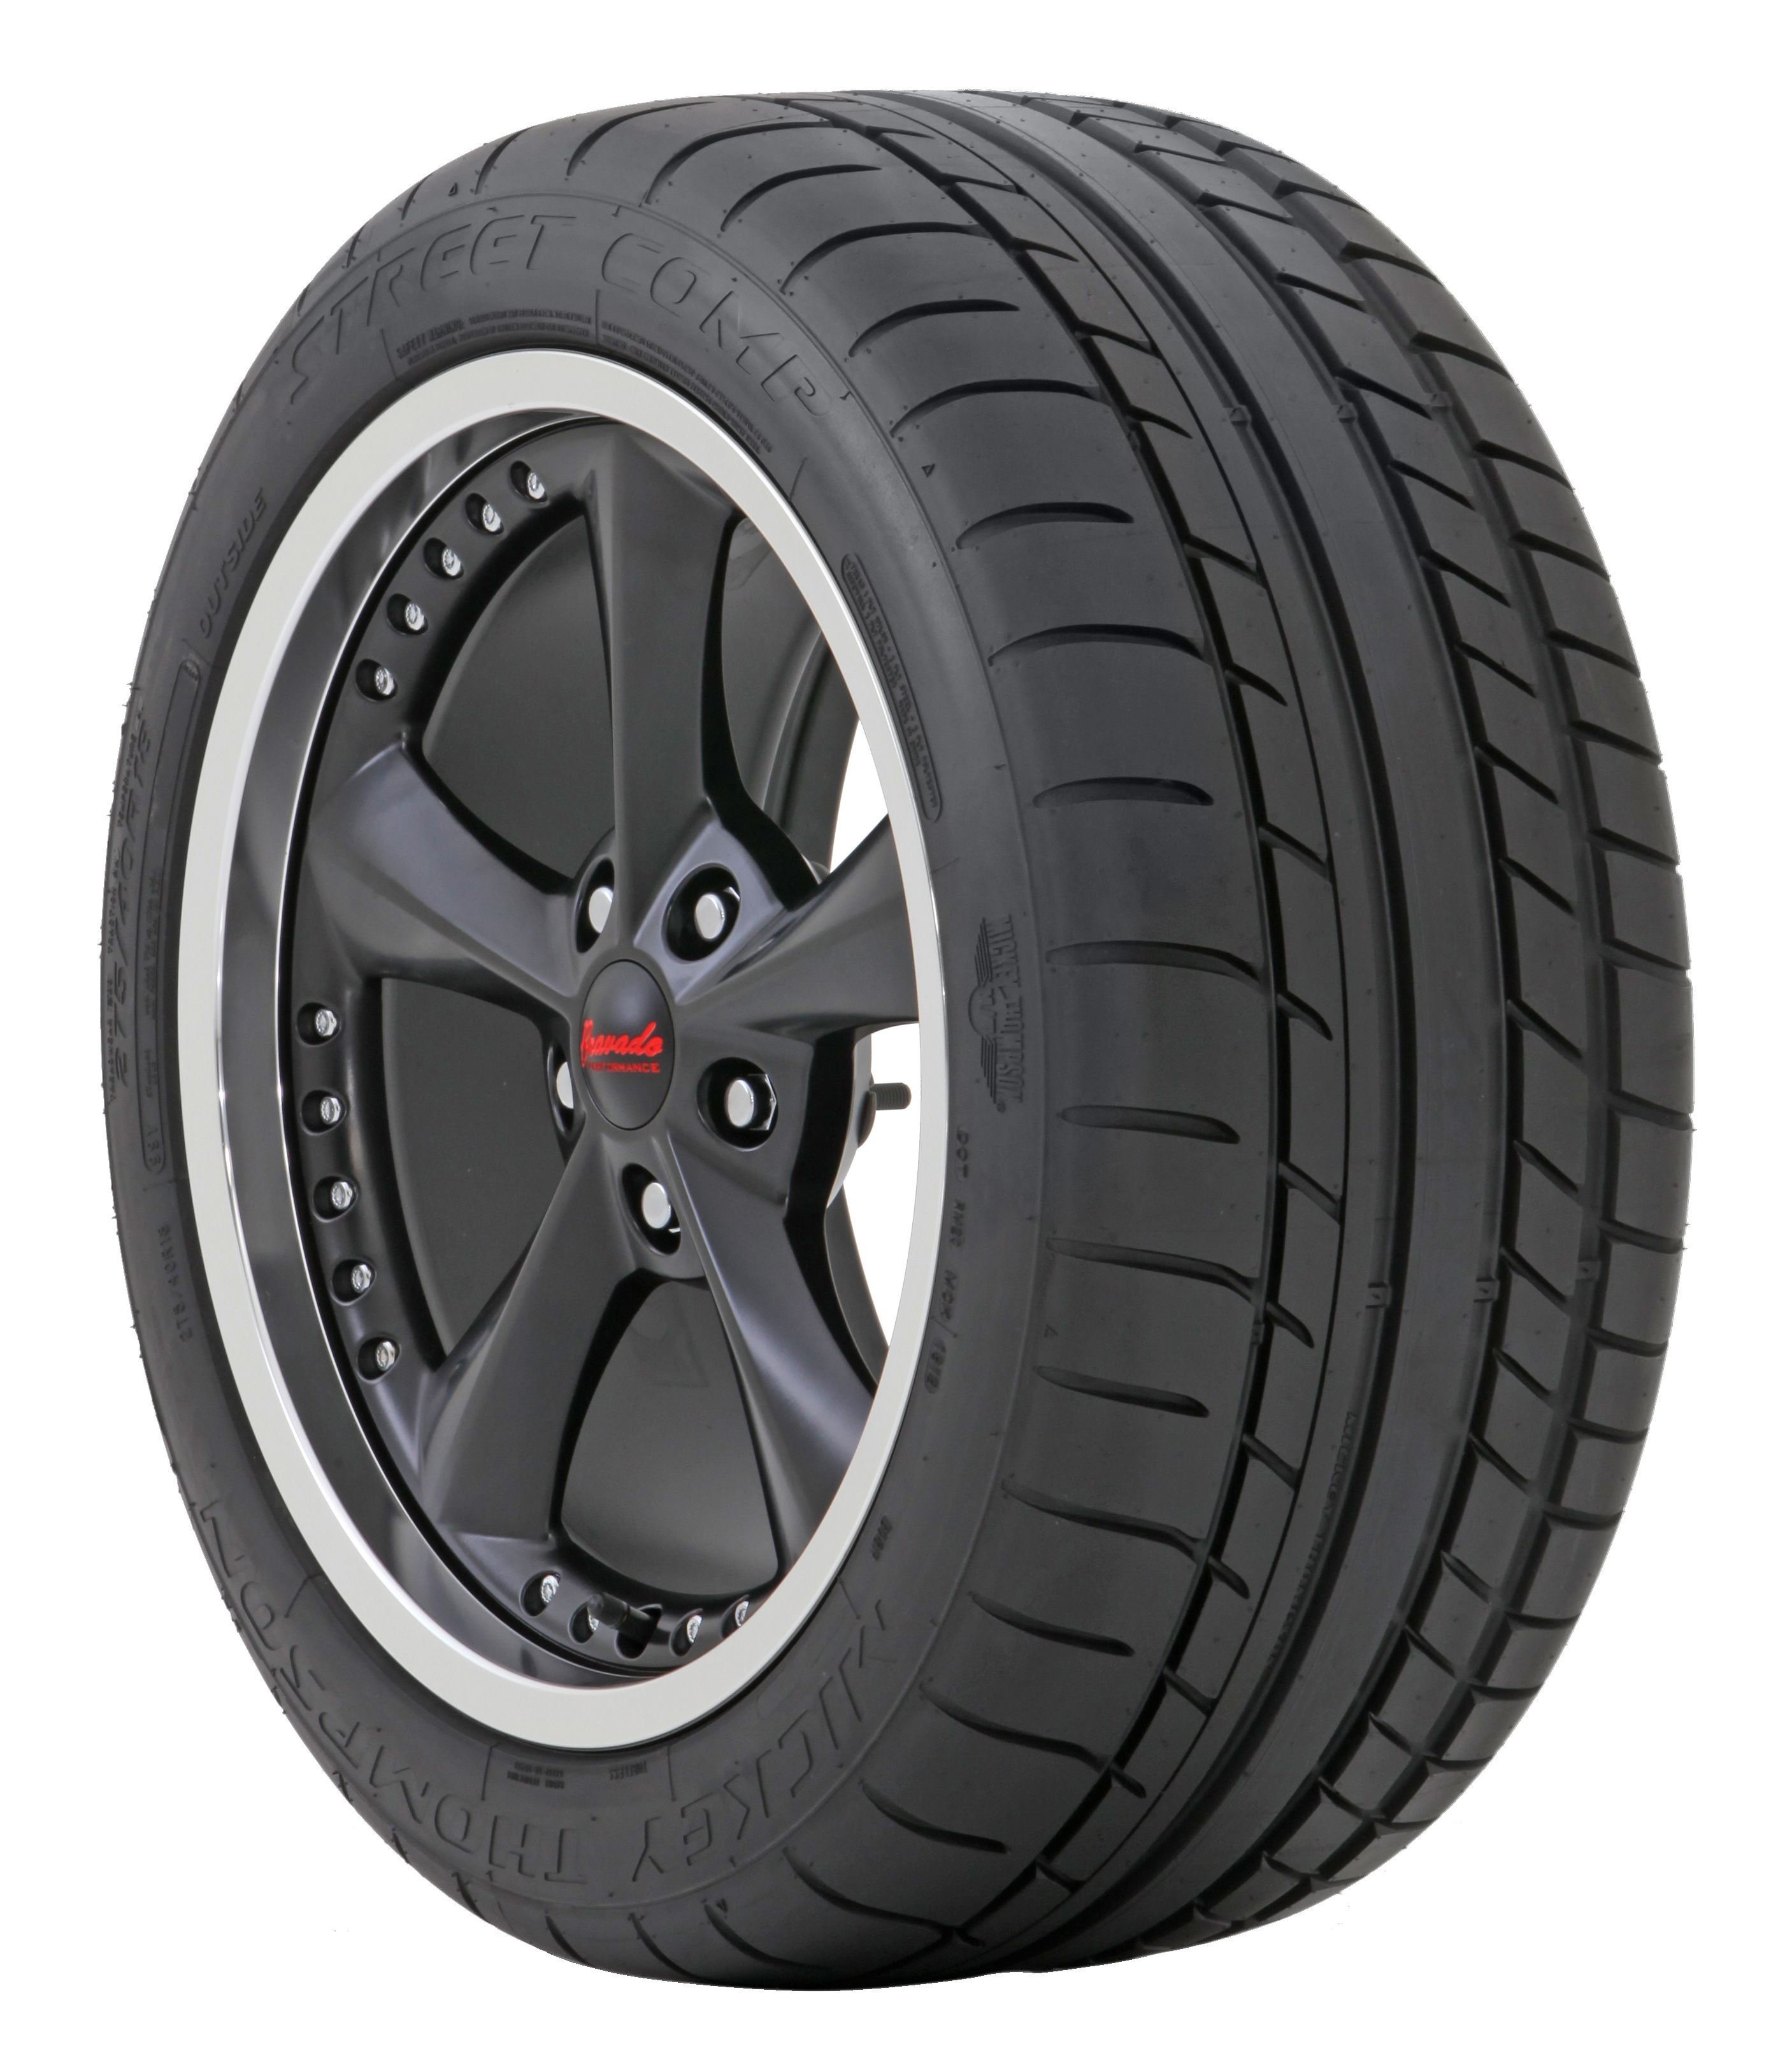 MT Street Comp: a 'racing' tire for the street